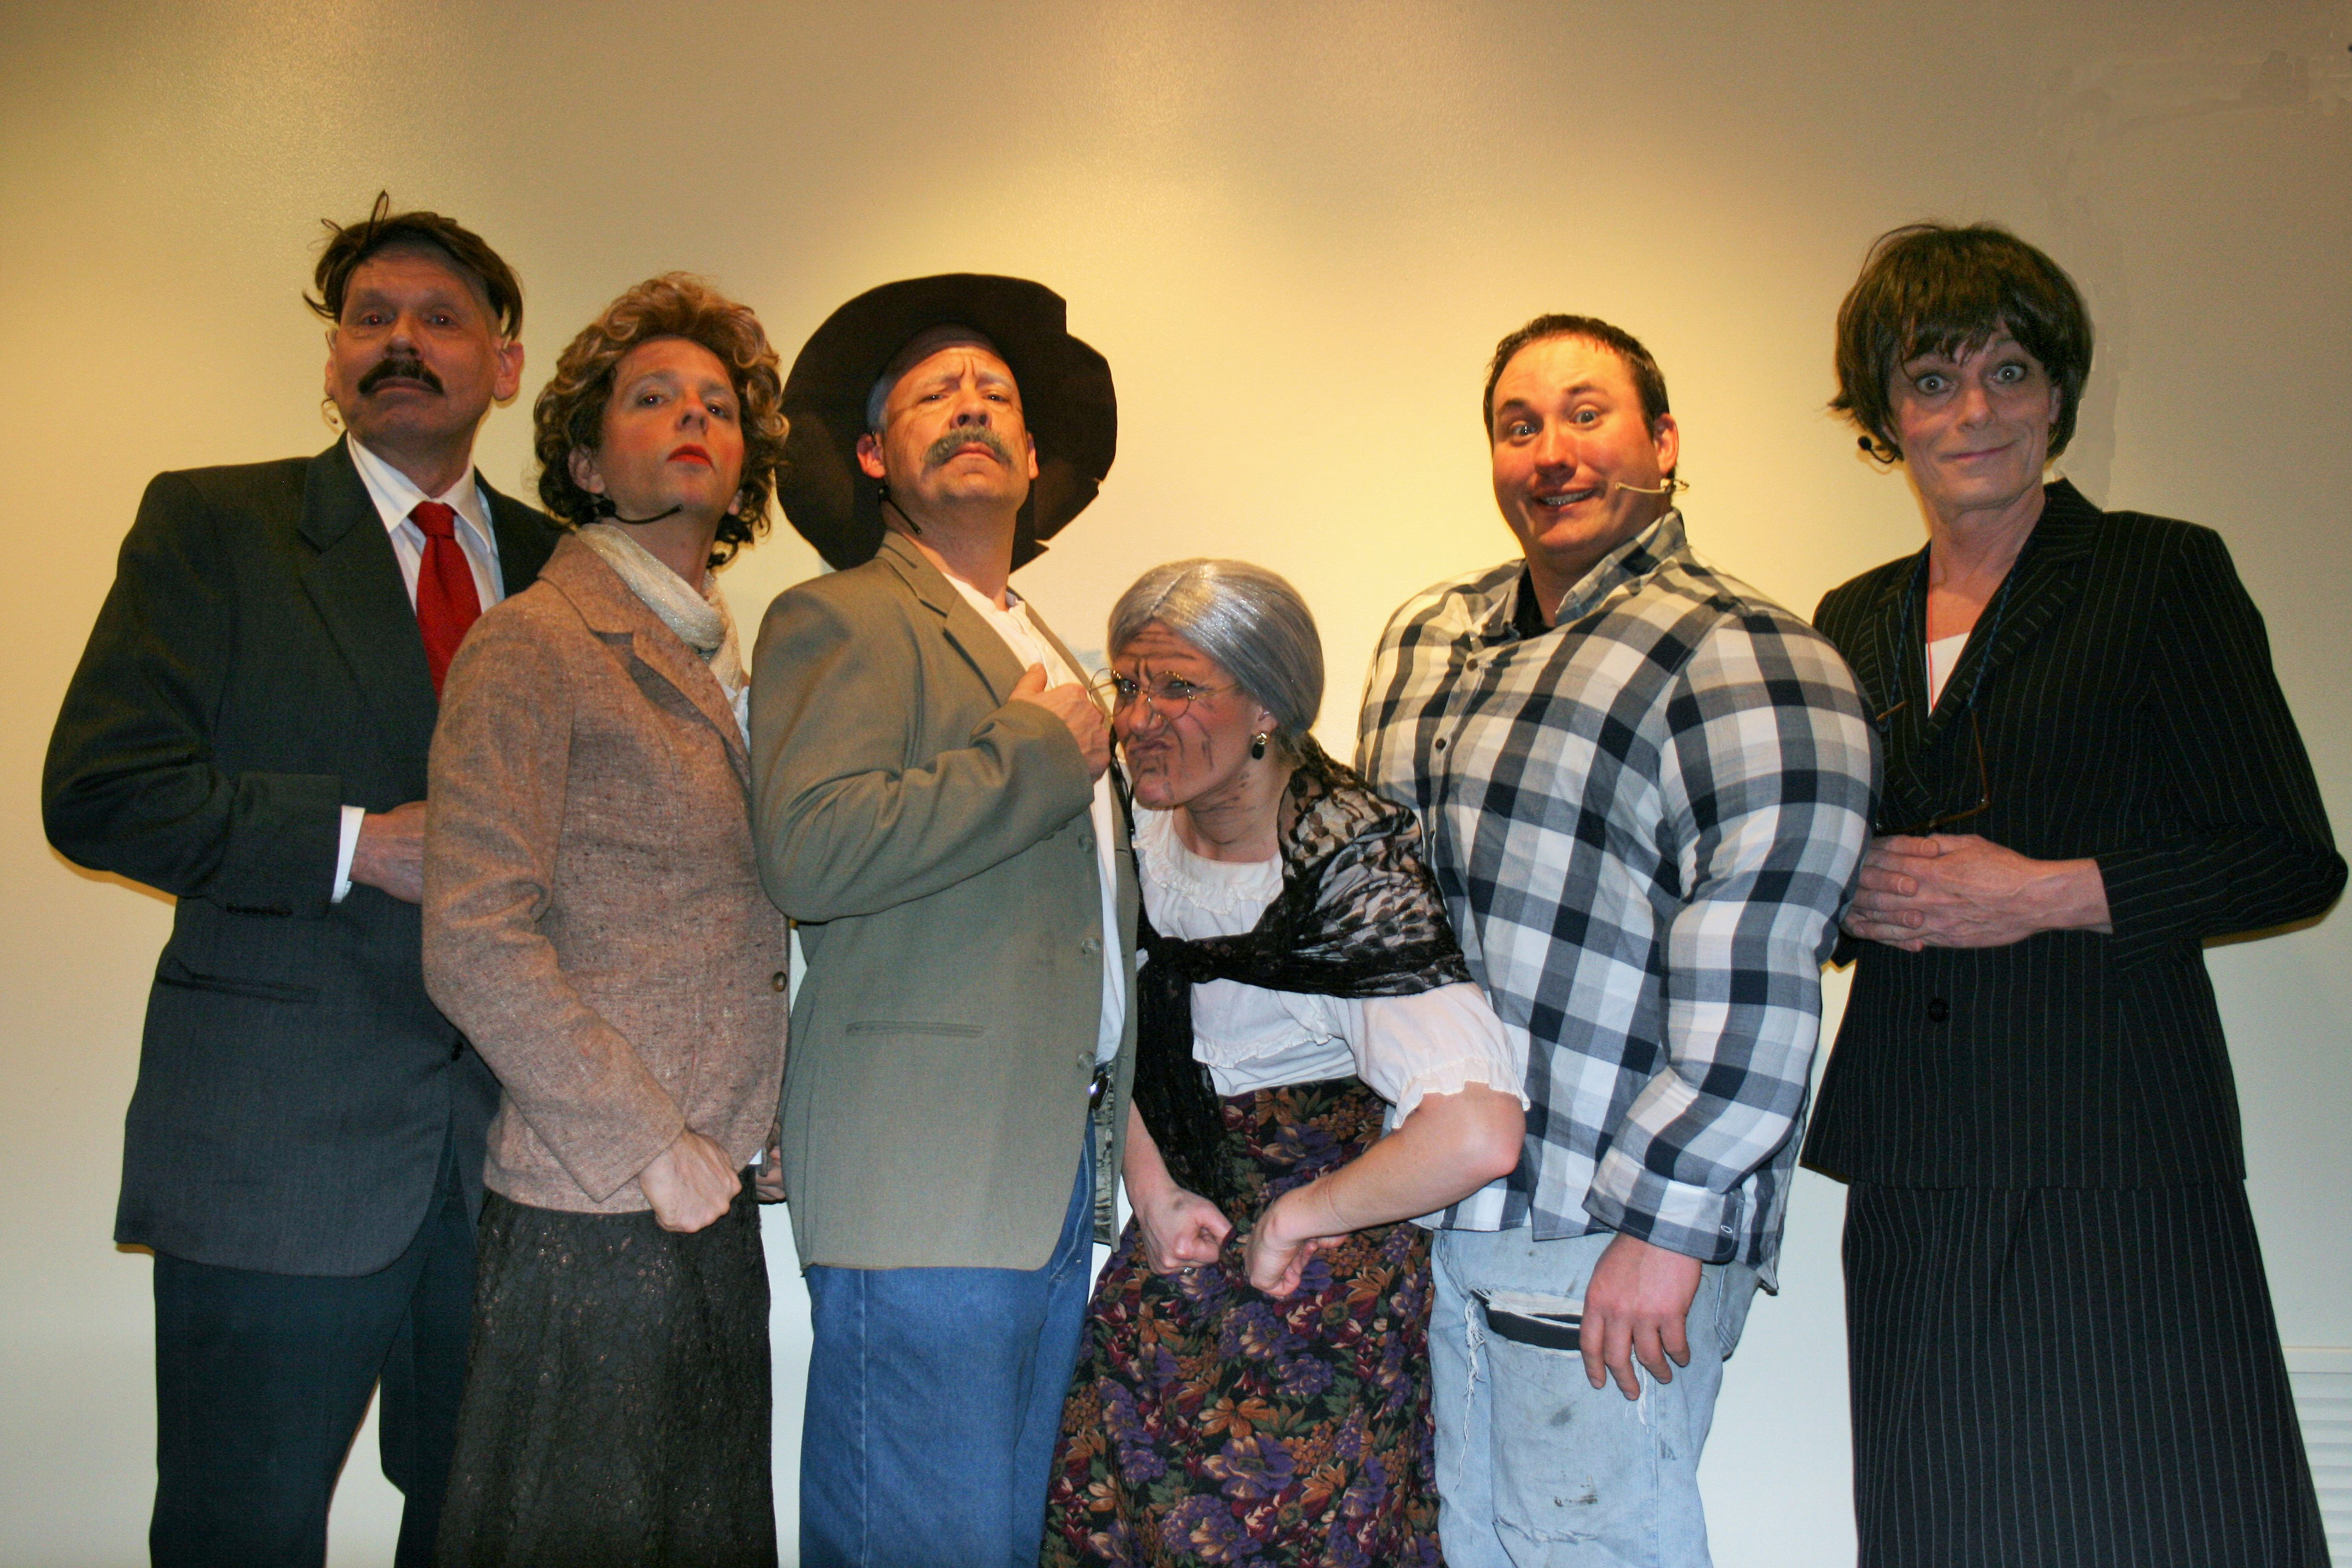 The Capitol Hillbillies Cast